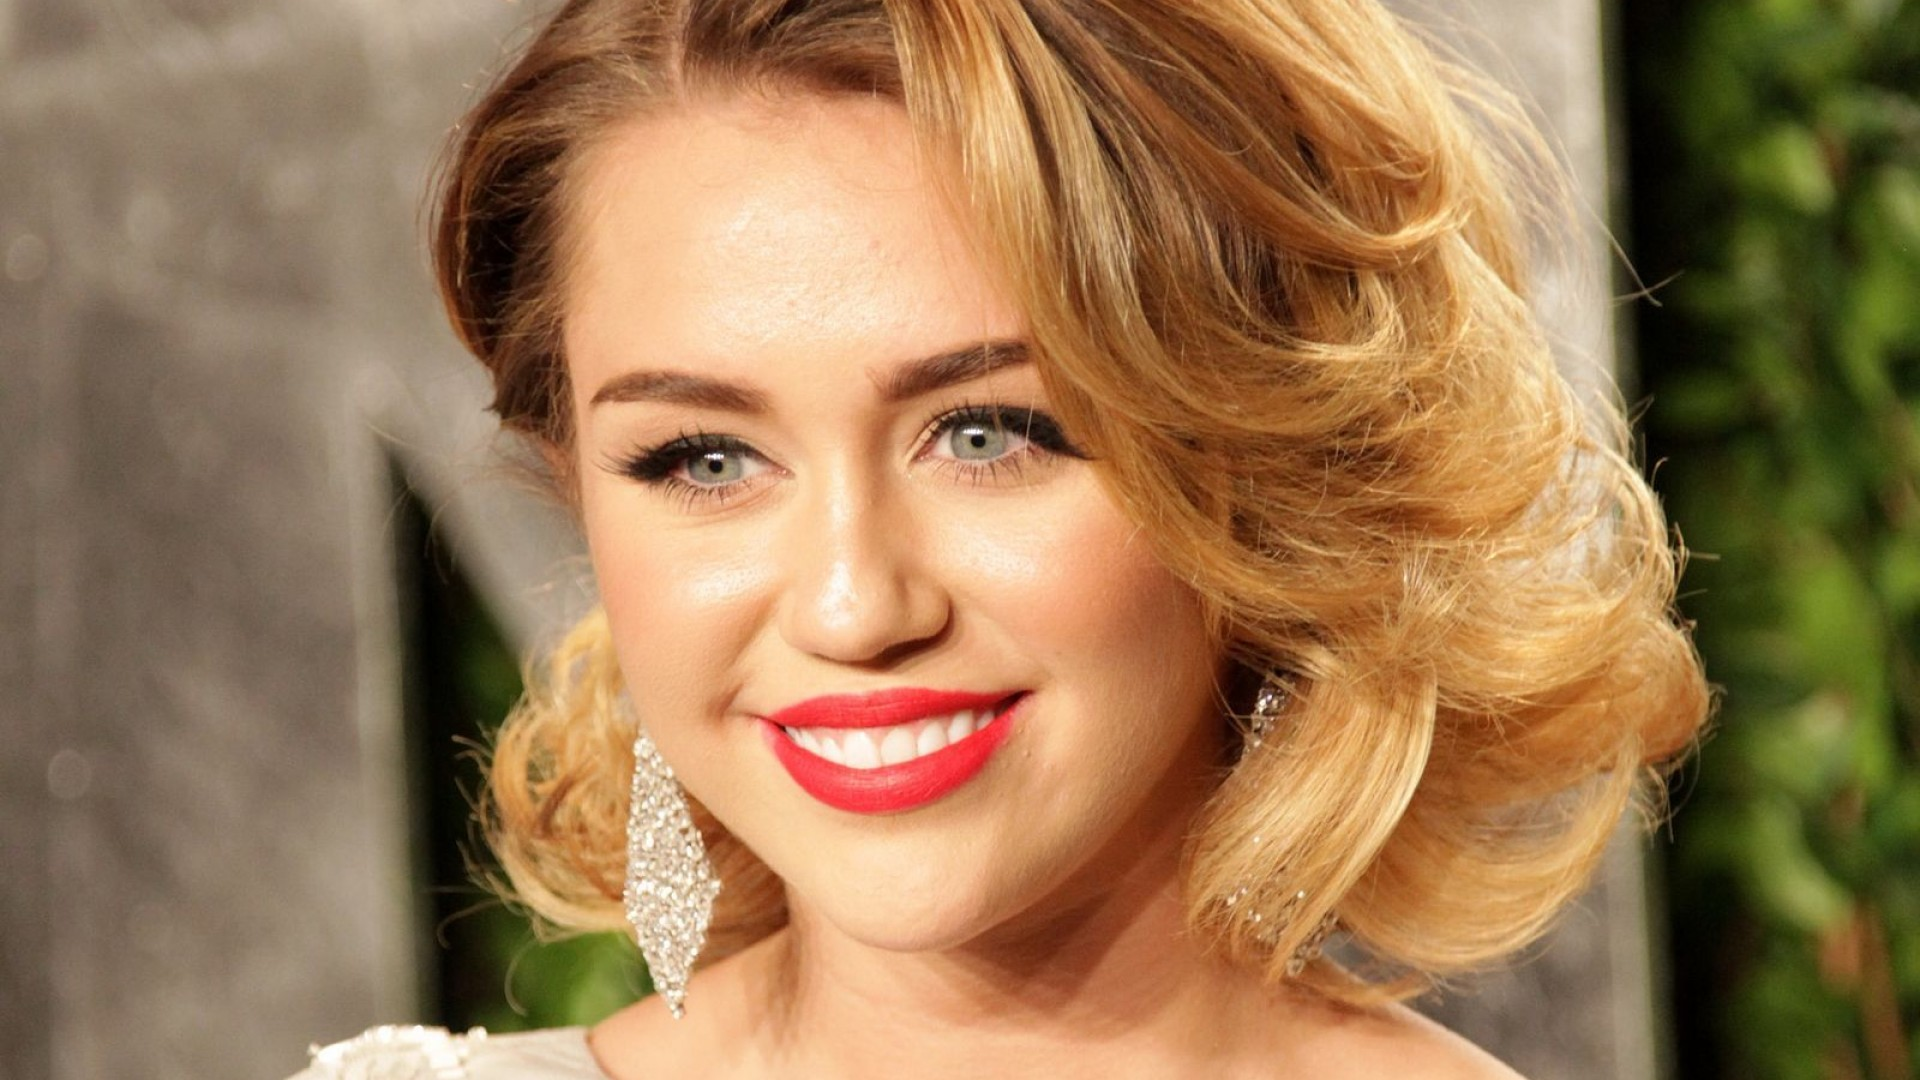 miley cyrus full hd - wallpaper, high definition, high quality